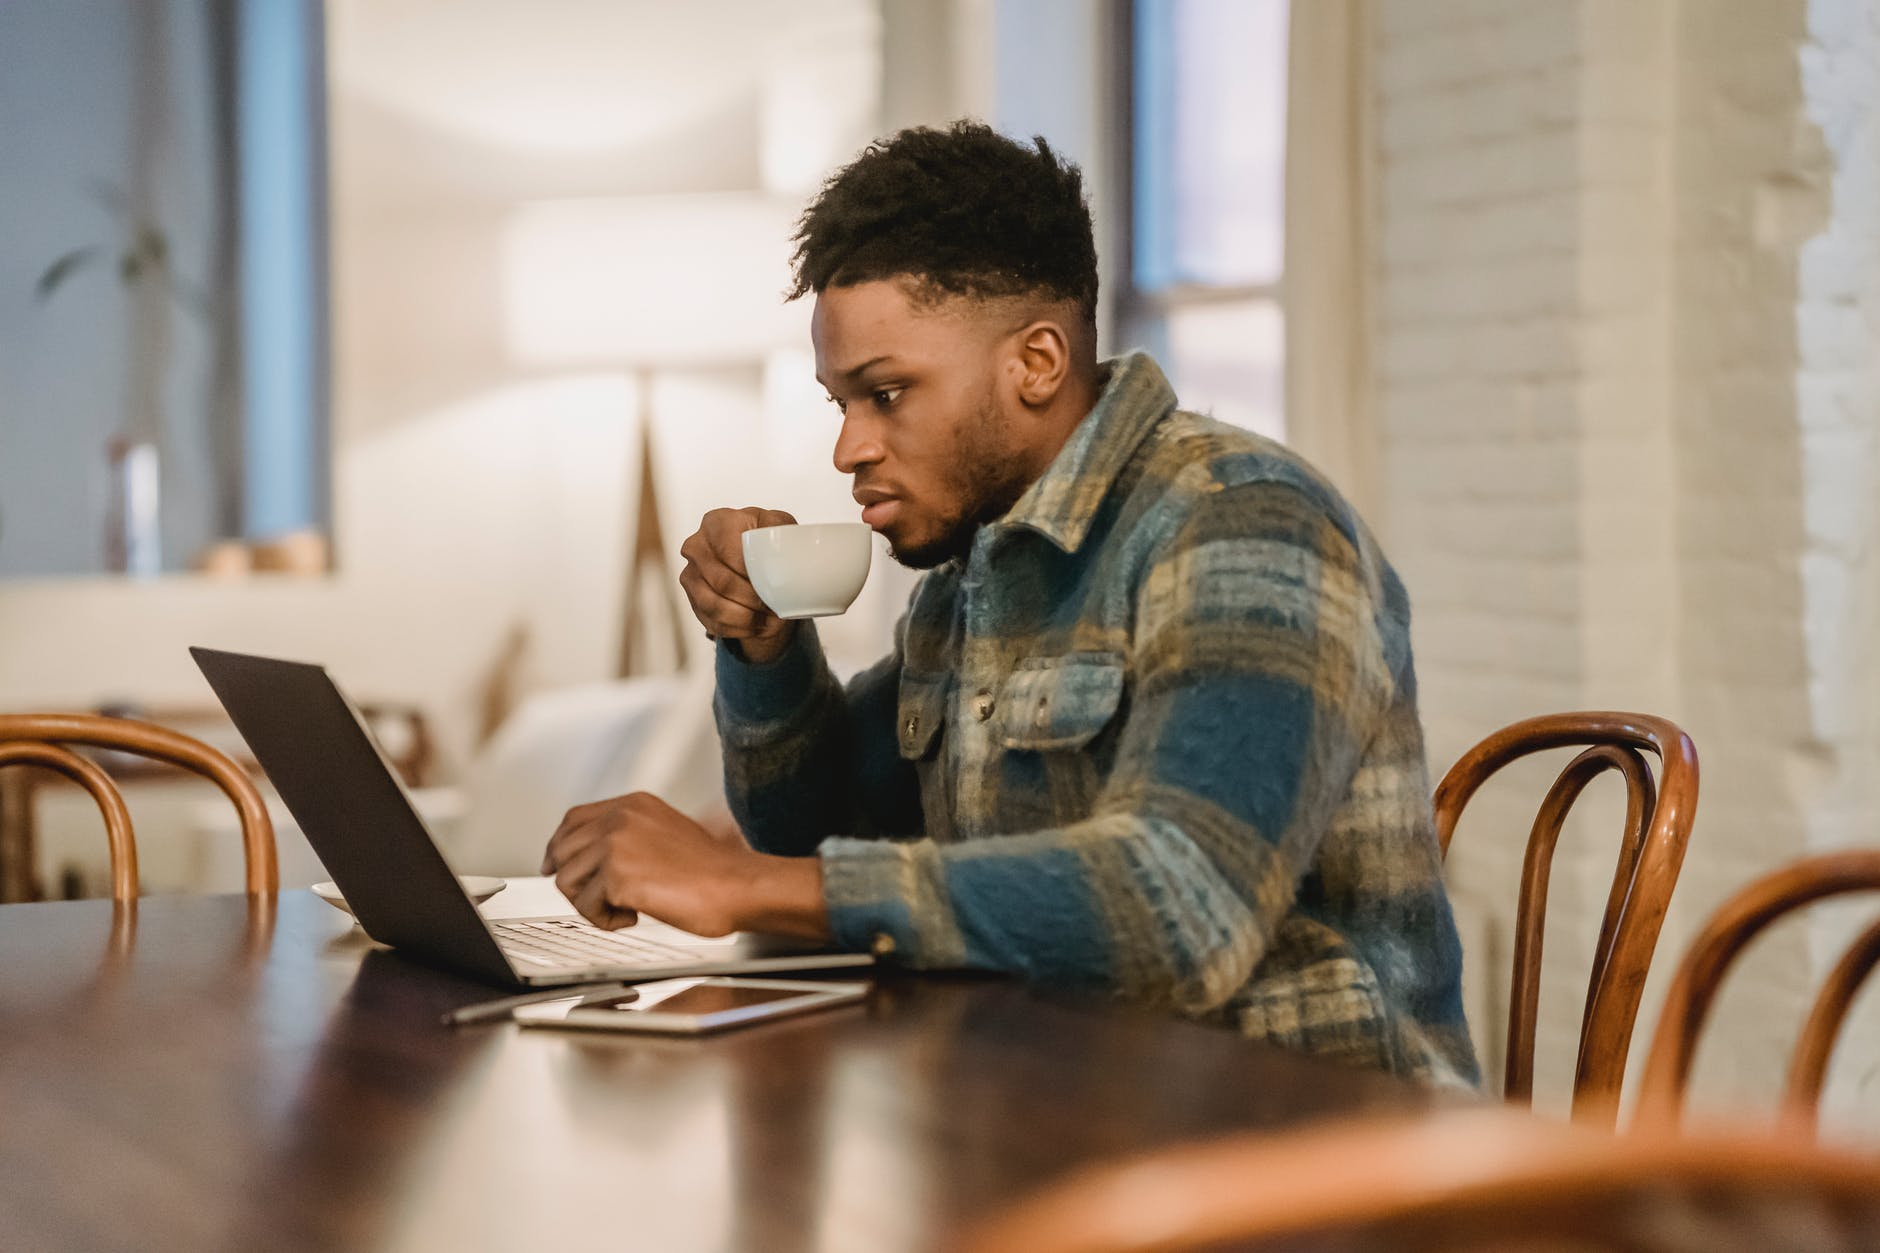 concentrated black man working on laptop and drinking coffee